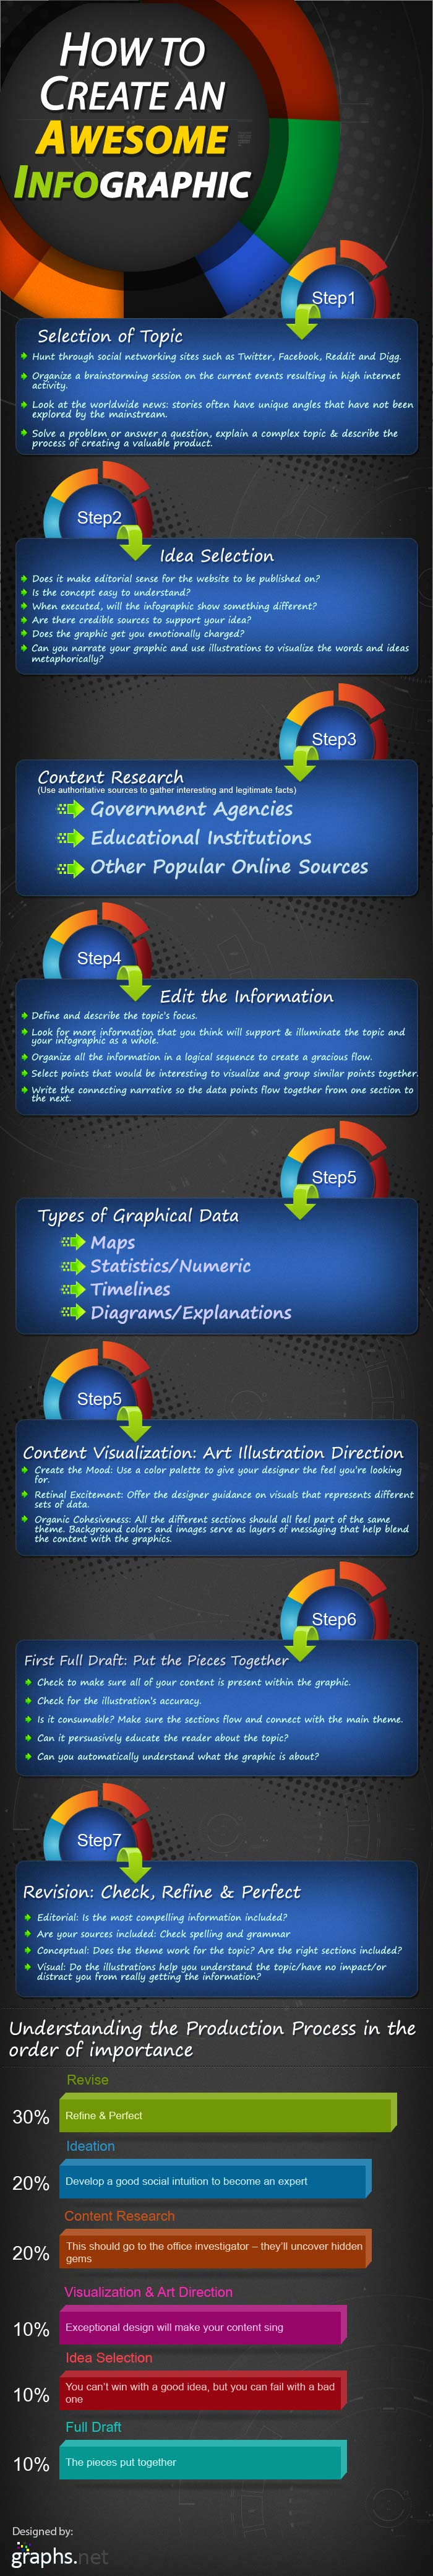 Infographic Creation 101-Infographic